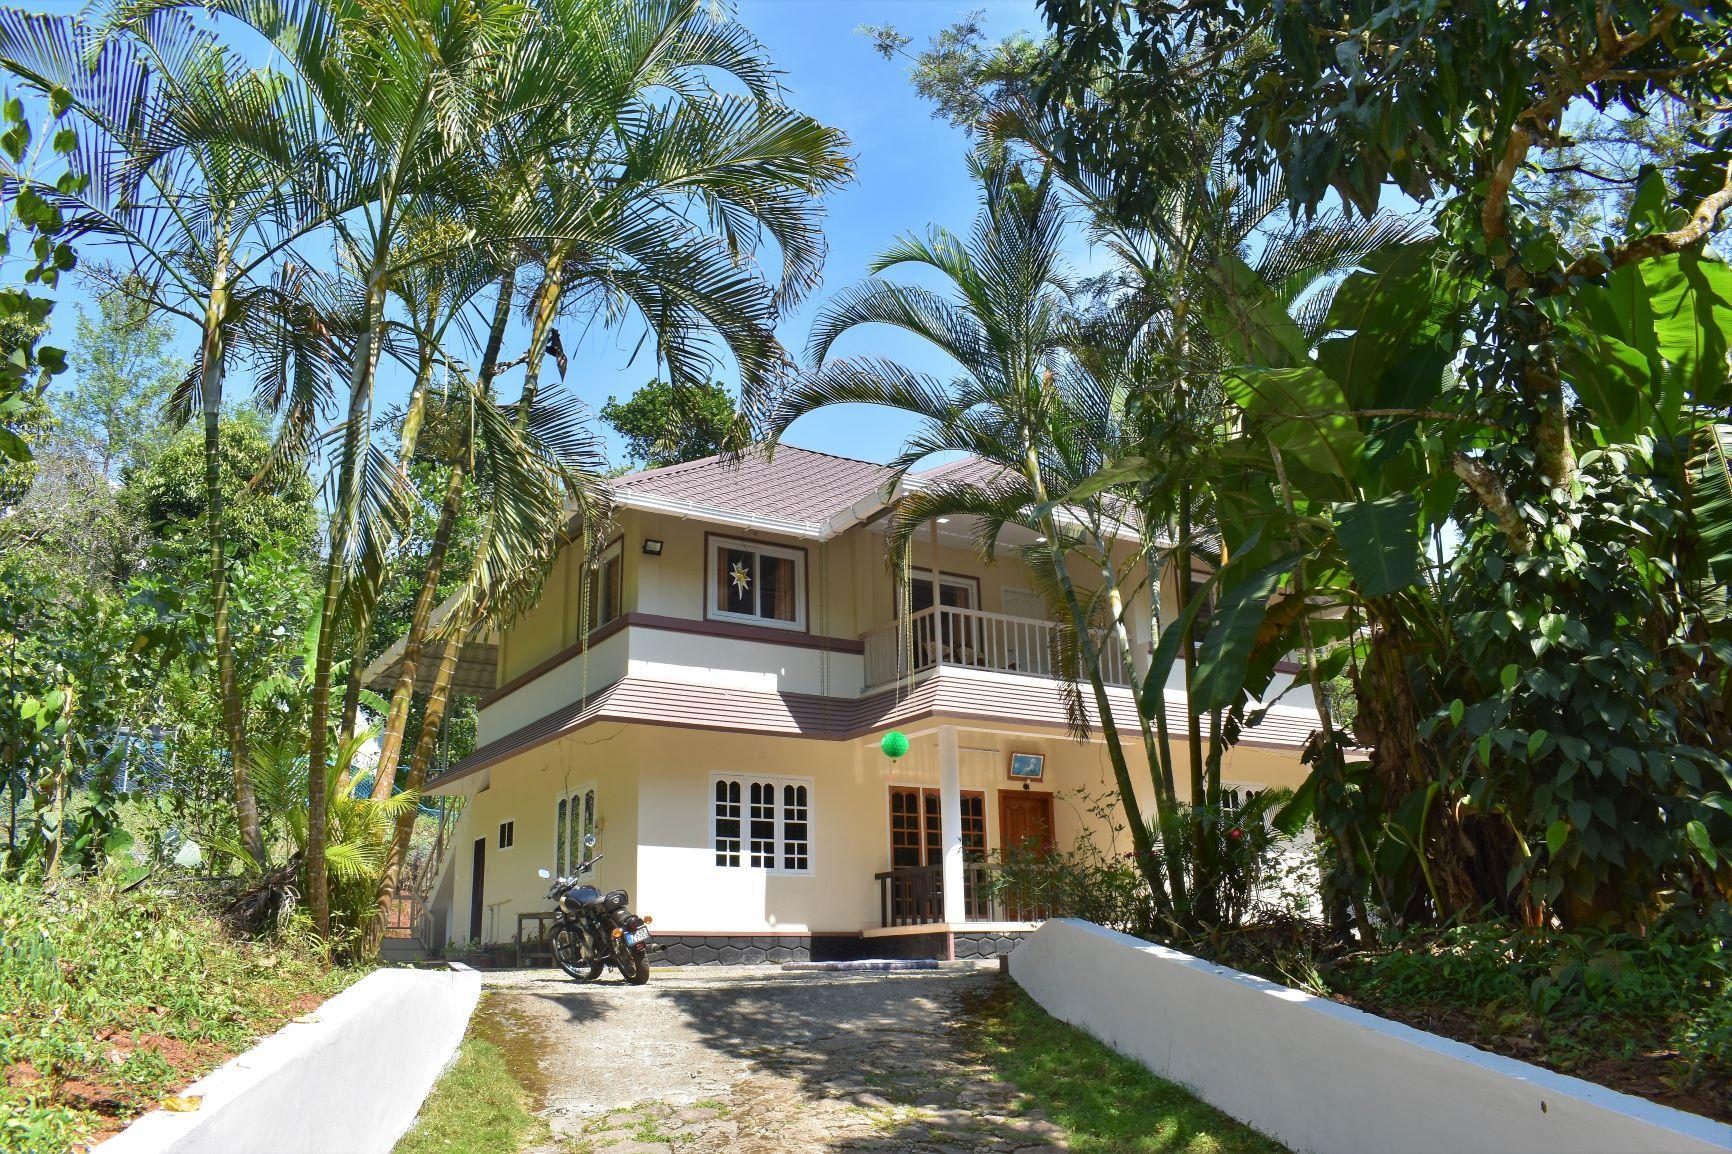 OryzaLand 3BHK Holiday Home